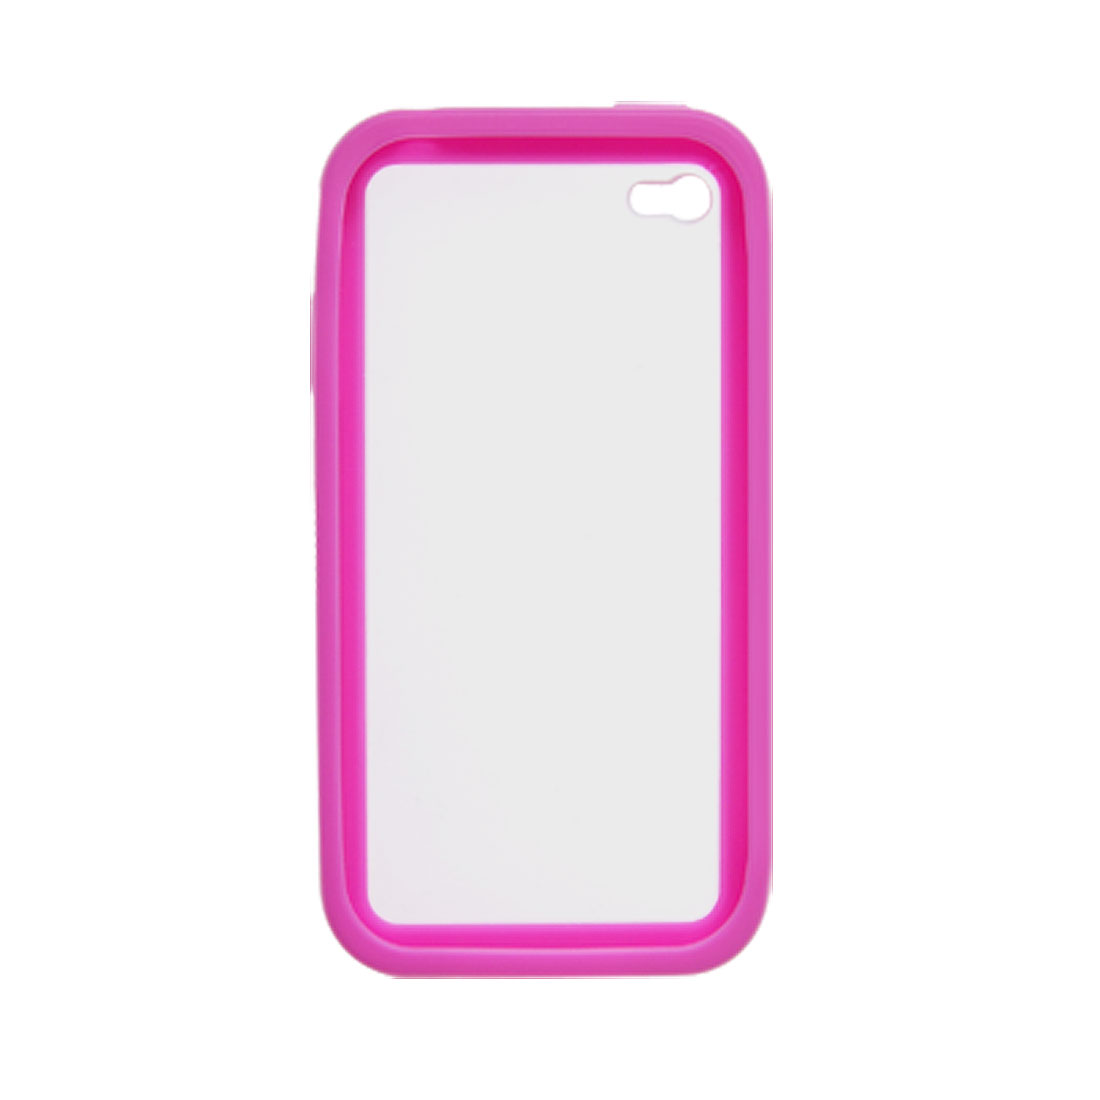 Amaranth Pink Soft Side Clear Hard Back Case for iPhone 4 4G